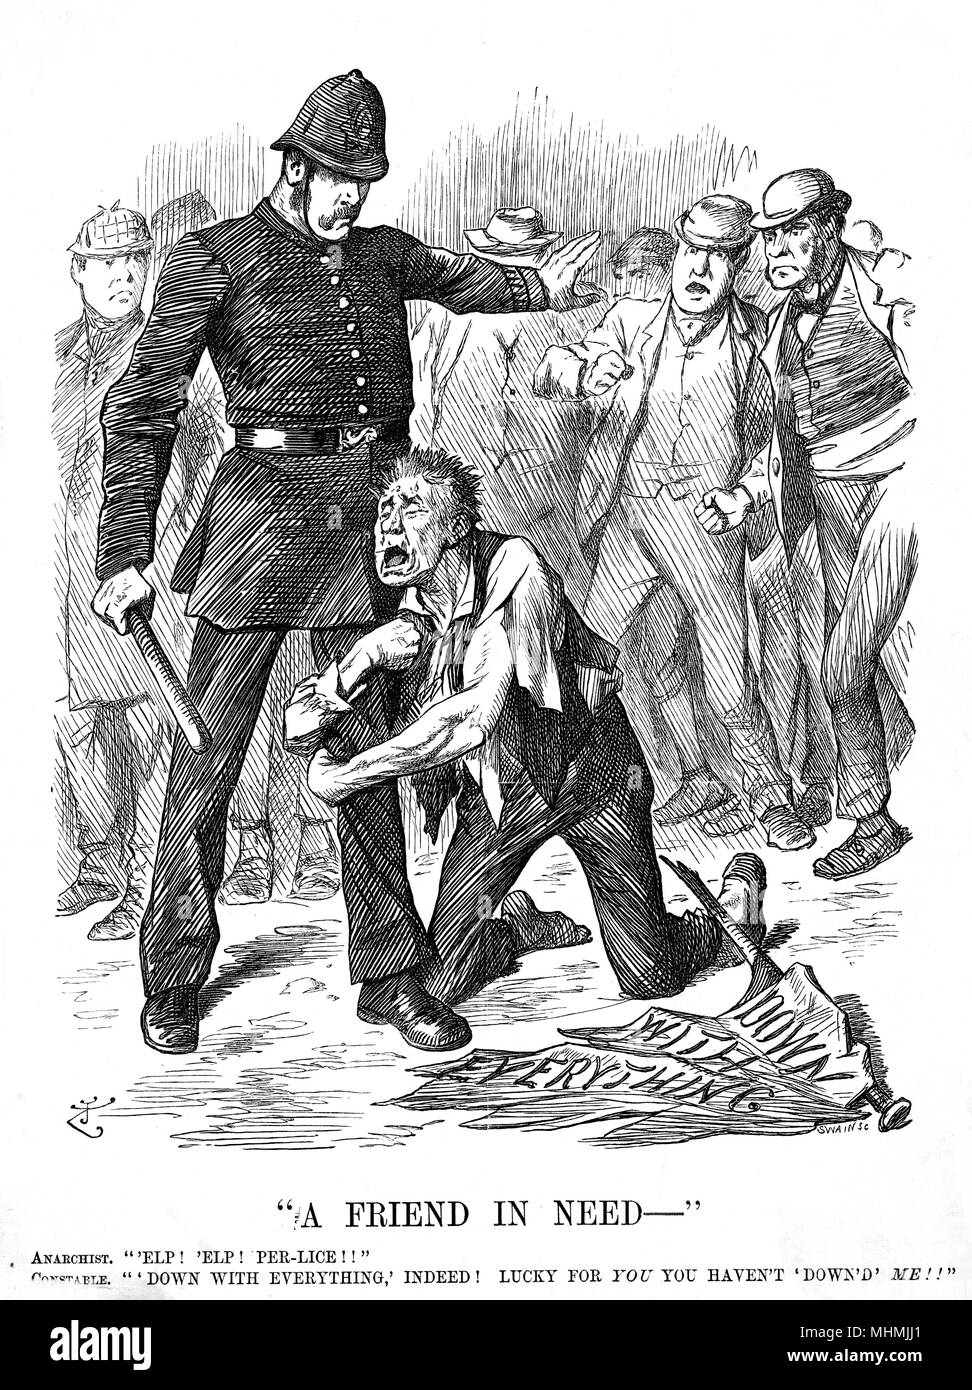 'A Friend in Need' An anarchist protestor seeks police protection from an angry crowd.      Date: 1894 - Stock Image